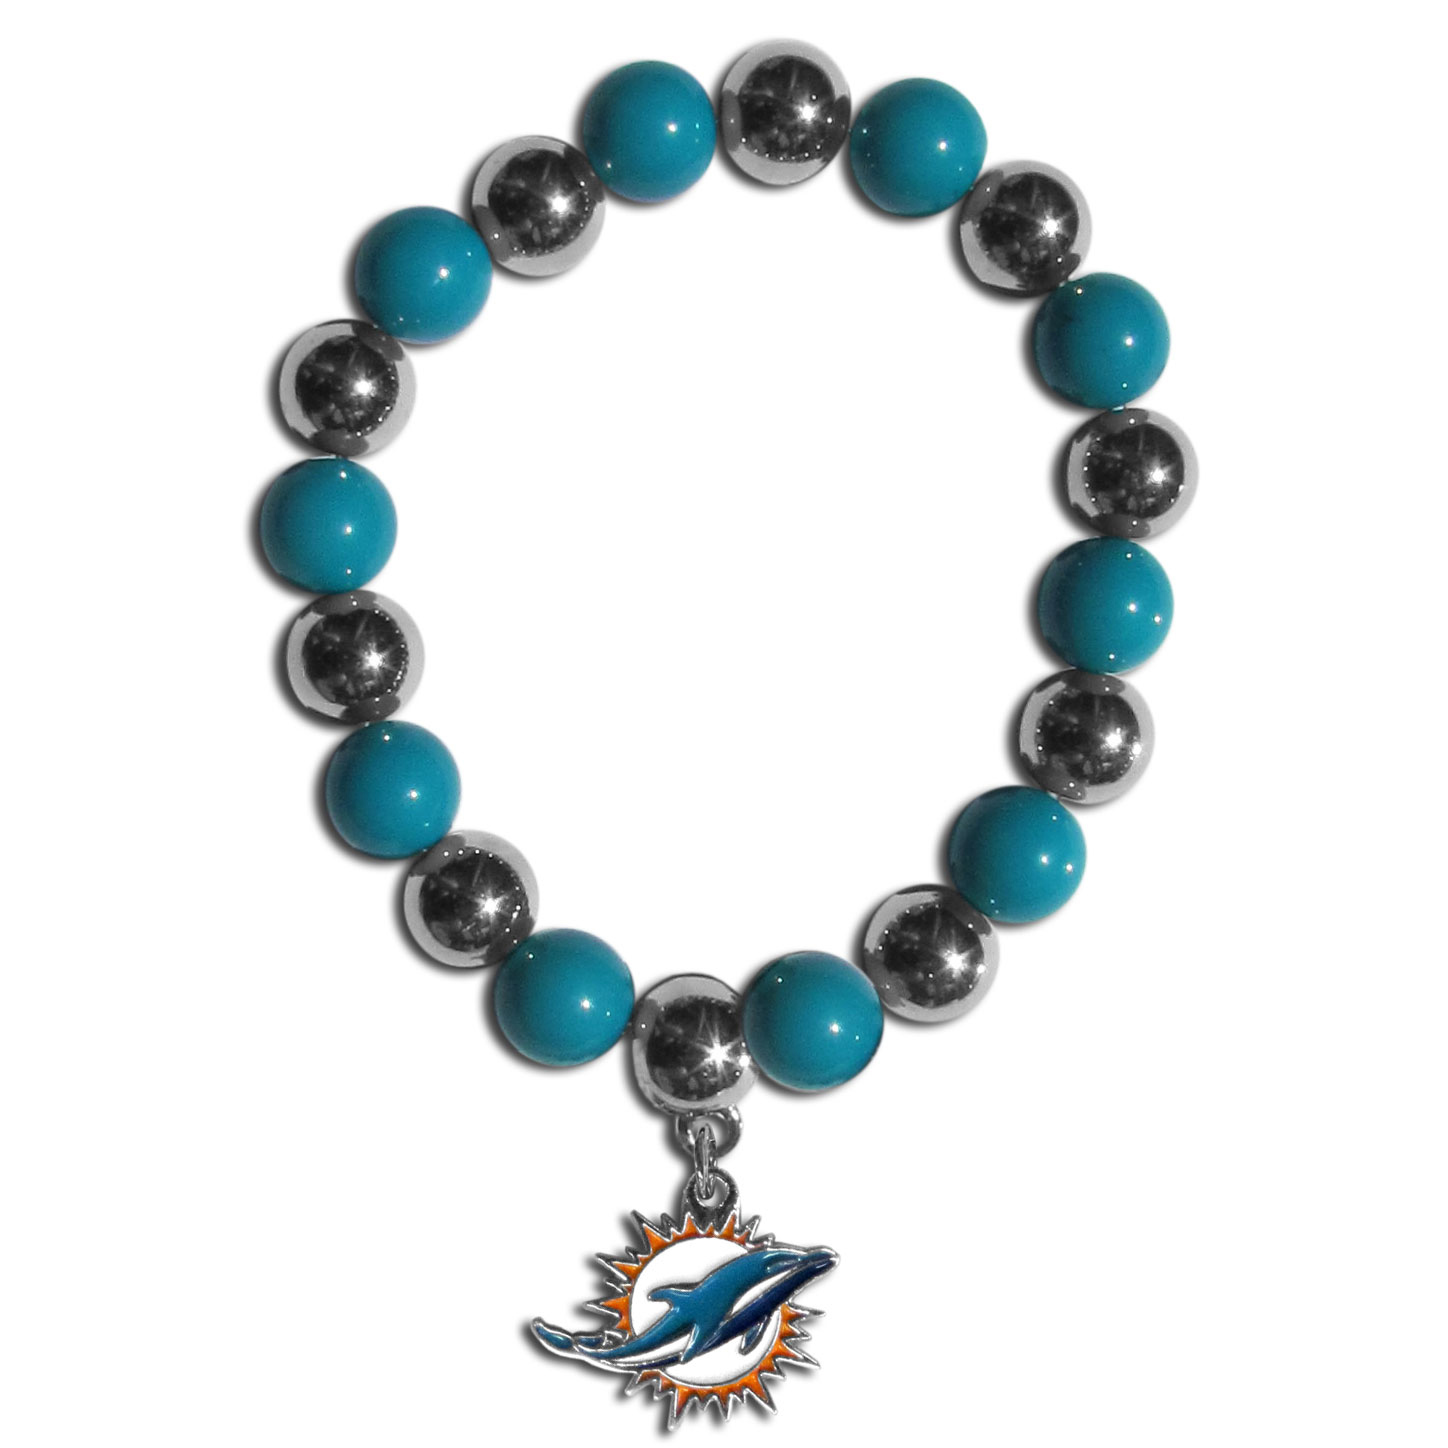 Miami Dolphins Chrome Bead Bracelet - Flash your Miami Dolphins spirit with this bright stretch bracelet. This new bracelet features alternating charm & team beads on stretch cord with a nickel-free enameled chrome team charm. This bracelet adds the perfect pop of color to your game day accessories.